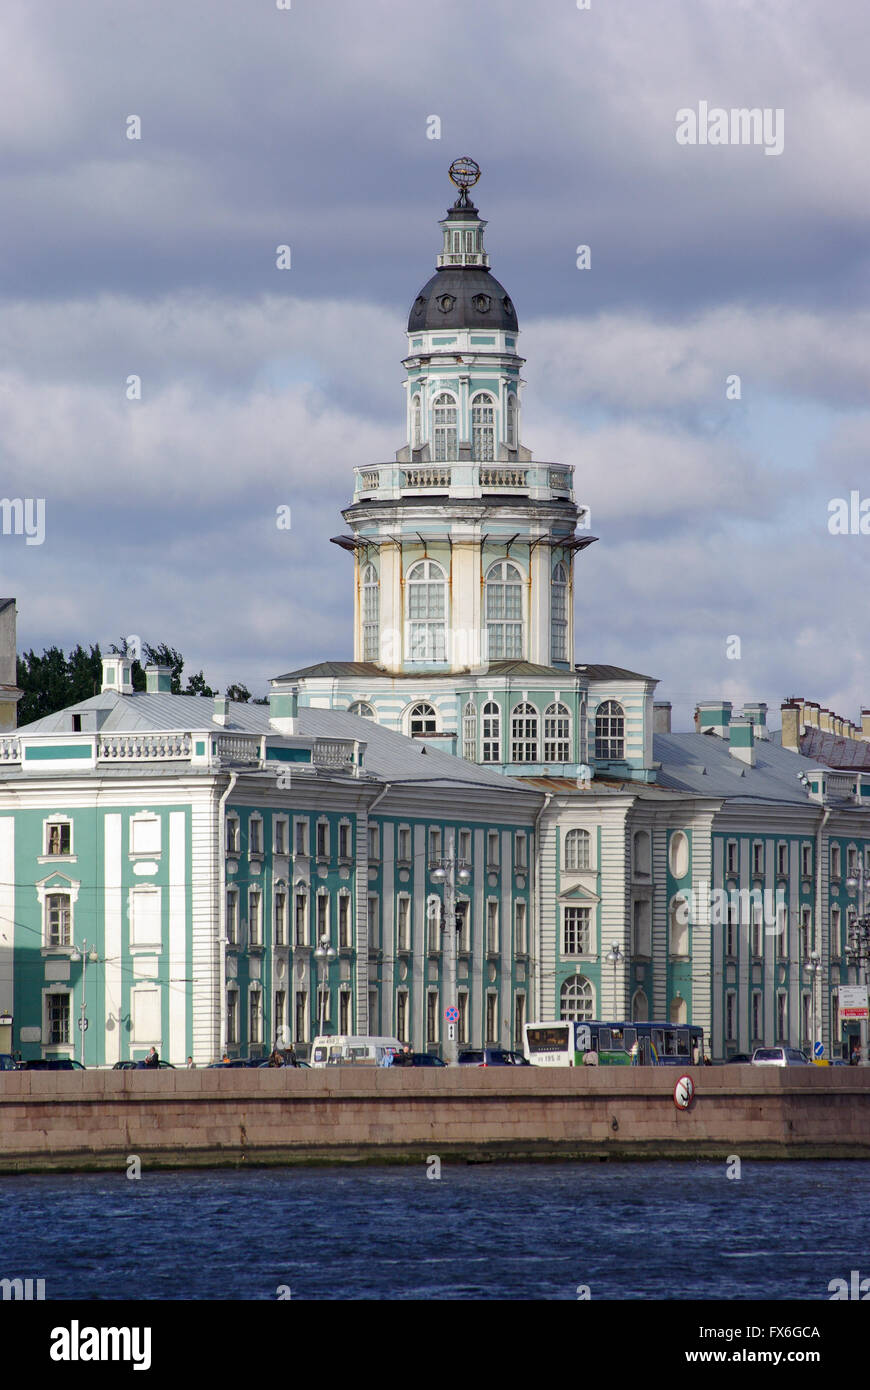 Russia. St. Petersburg. Curiosities. Museum of Anthropology and Ethnography of Peter the Great. - Stock Image